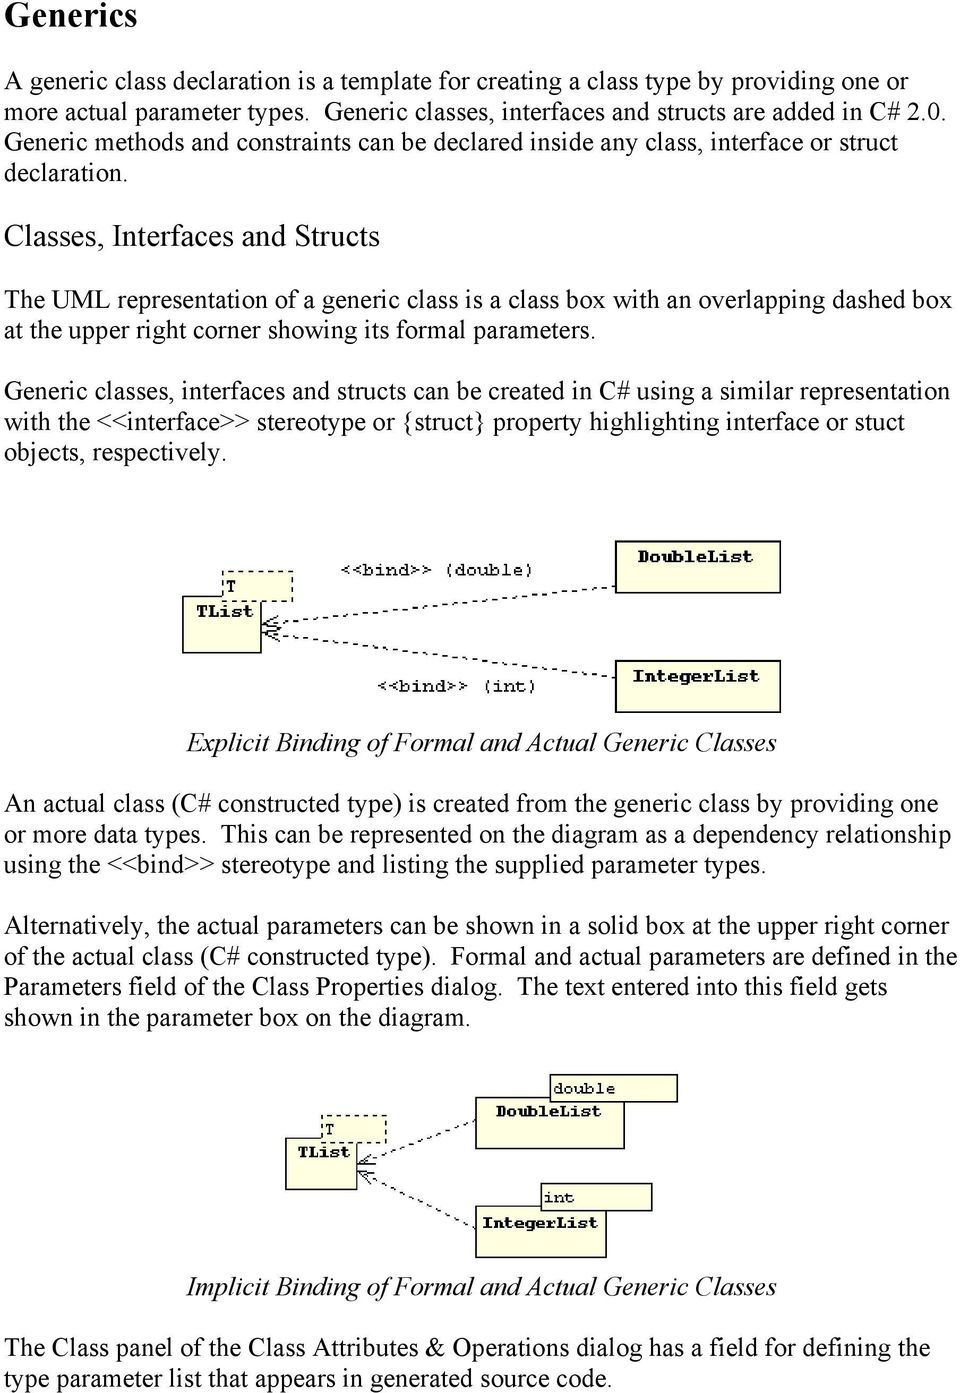 Classes, Interfaces and Structs The UML representation of a generic class is a class box with an overlapping dashed box at the upper right corner showing its formal parameters.